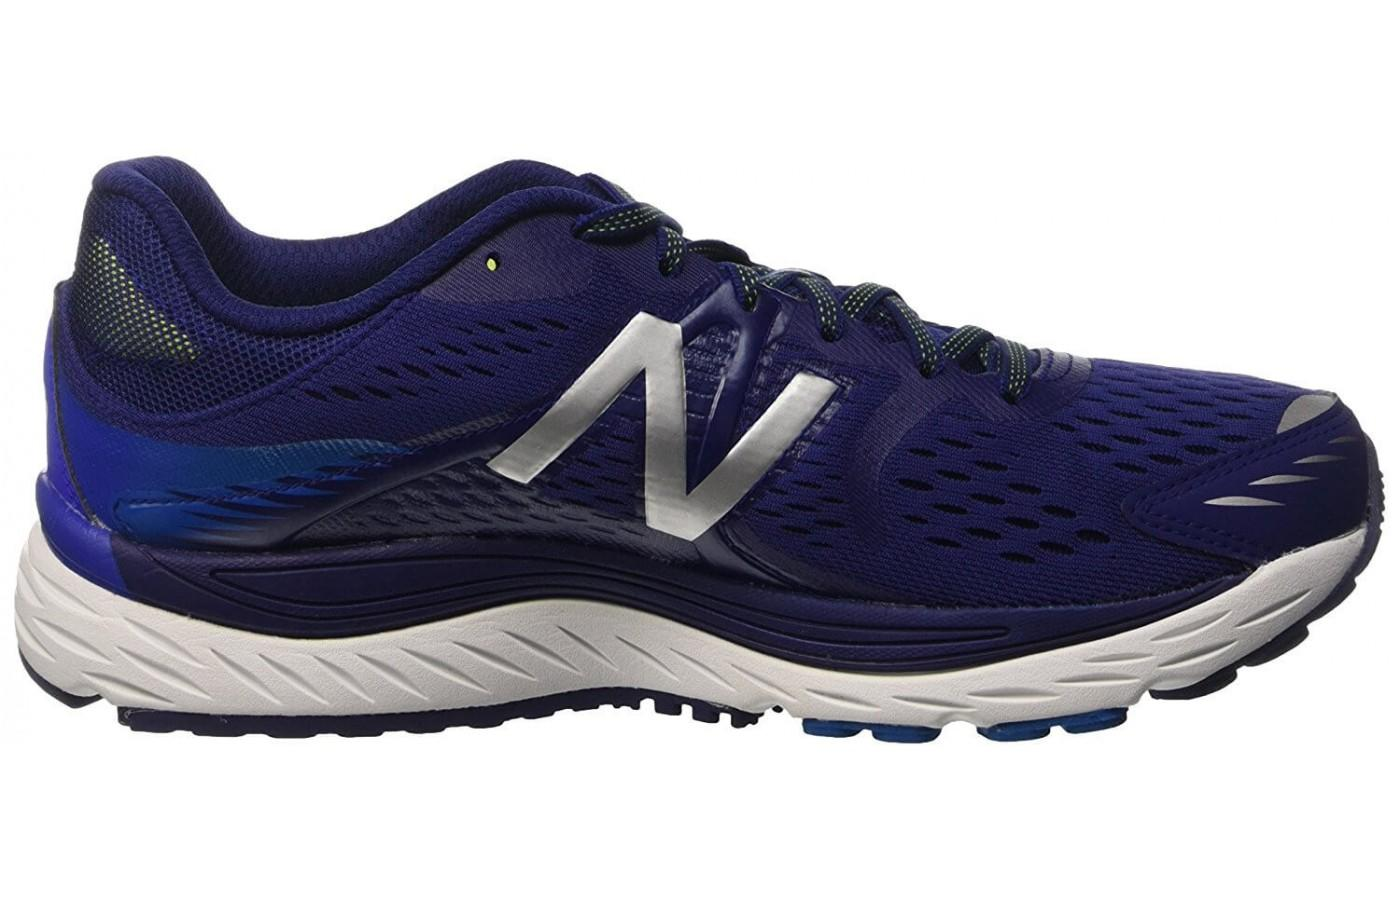 Men's dark blue color option for the New Balance 880 V7